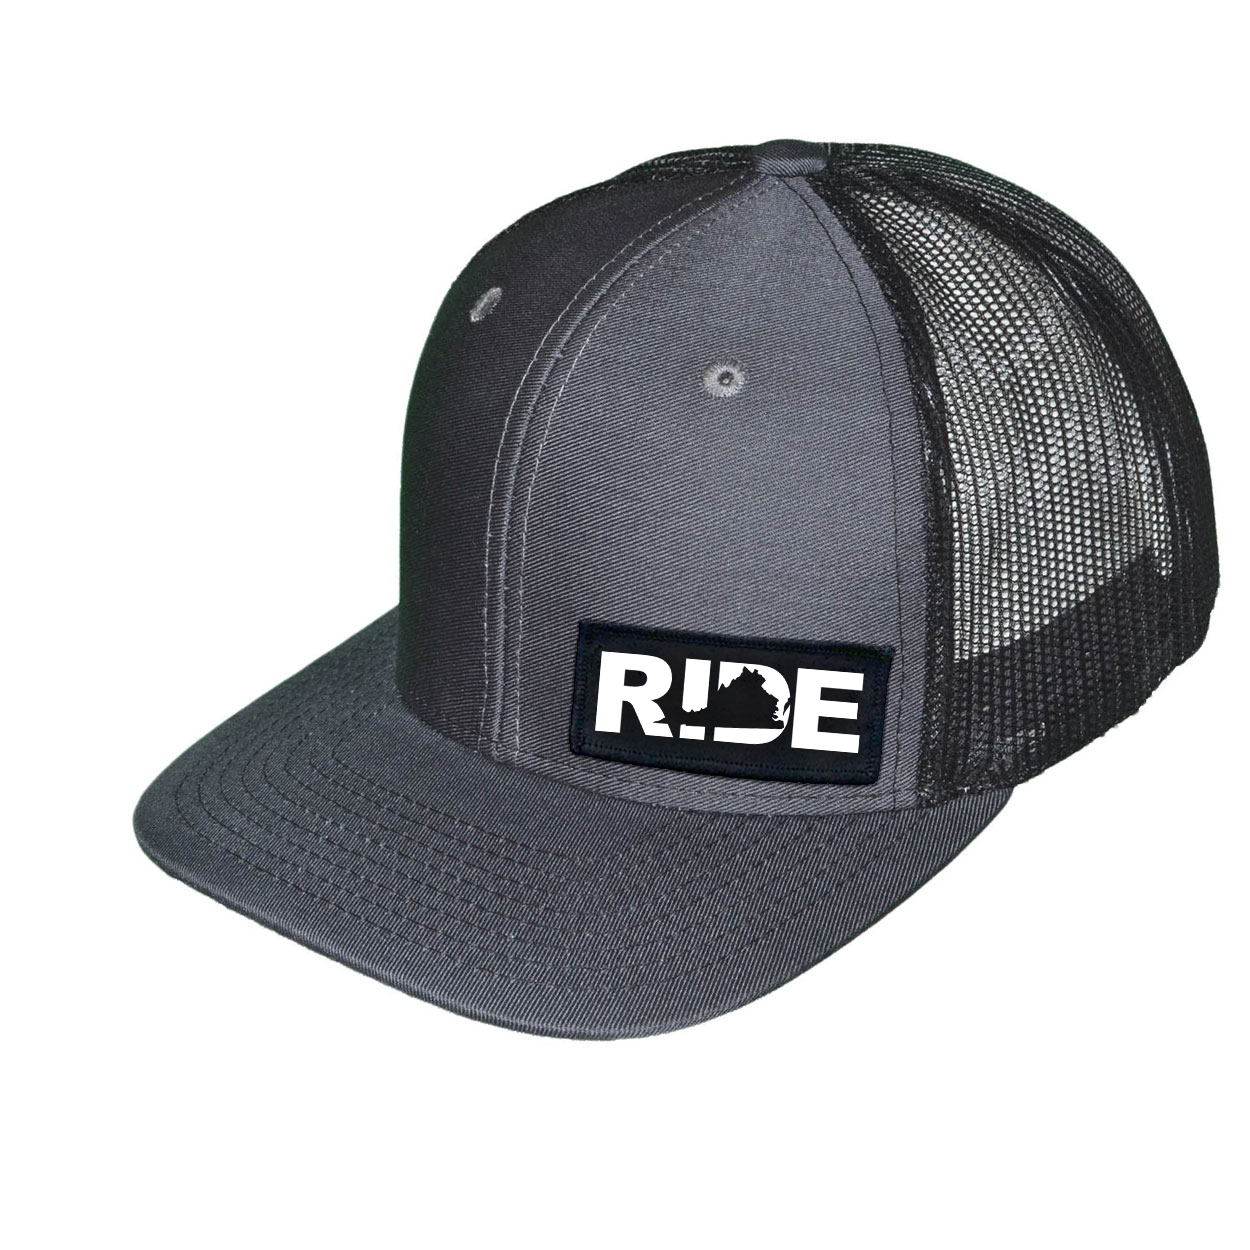 Ride Virginia Night Out Woven Patch Snapback Trucker Hat Dark Gray/Black (White Logo)